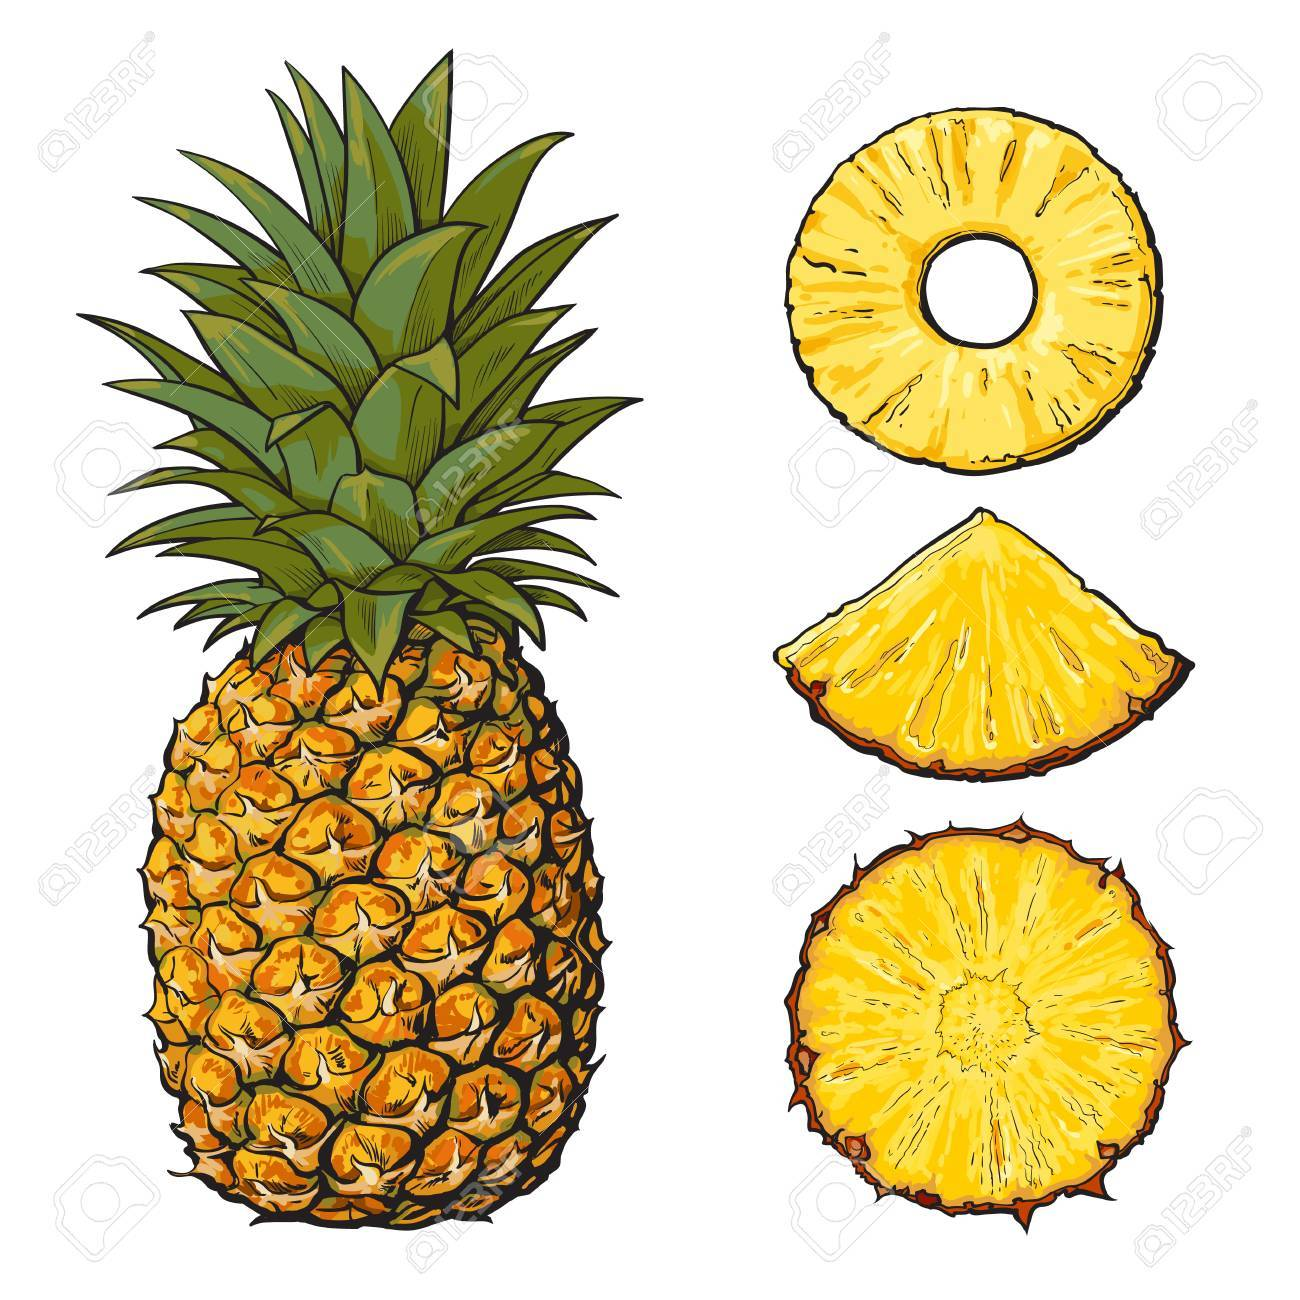 whole pineapple and three types of slices round peeled unpeeled